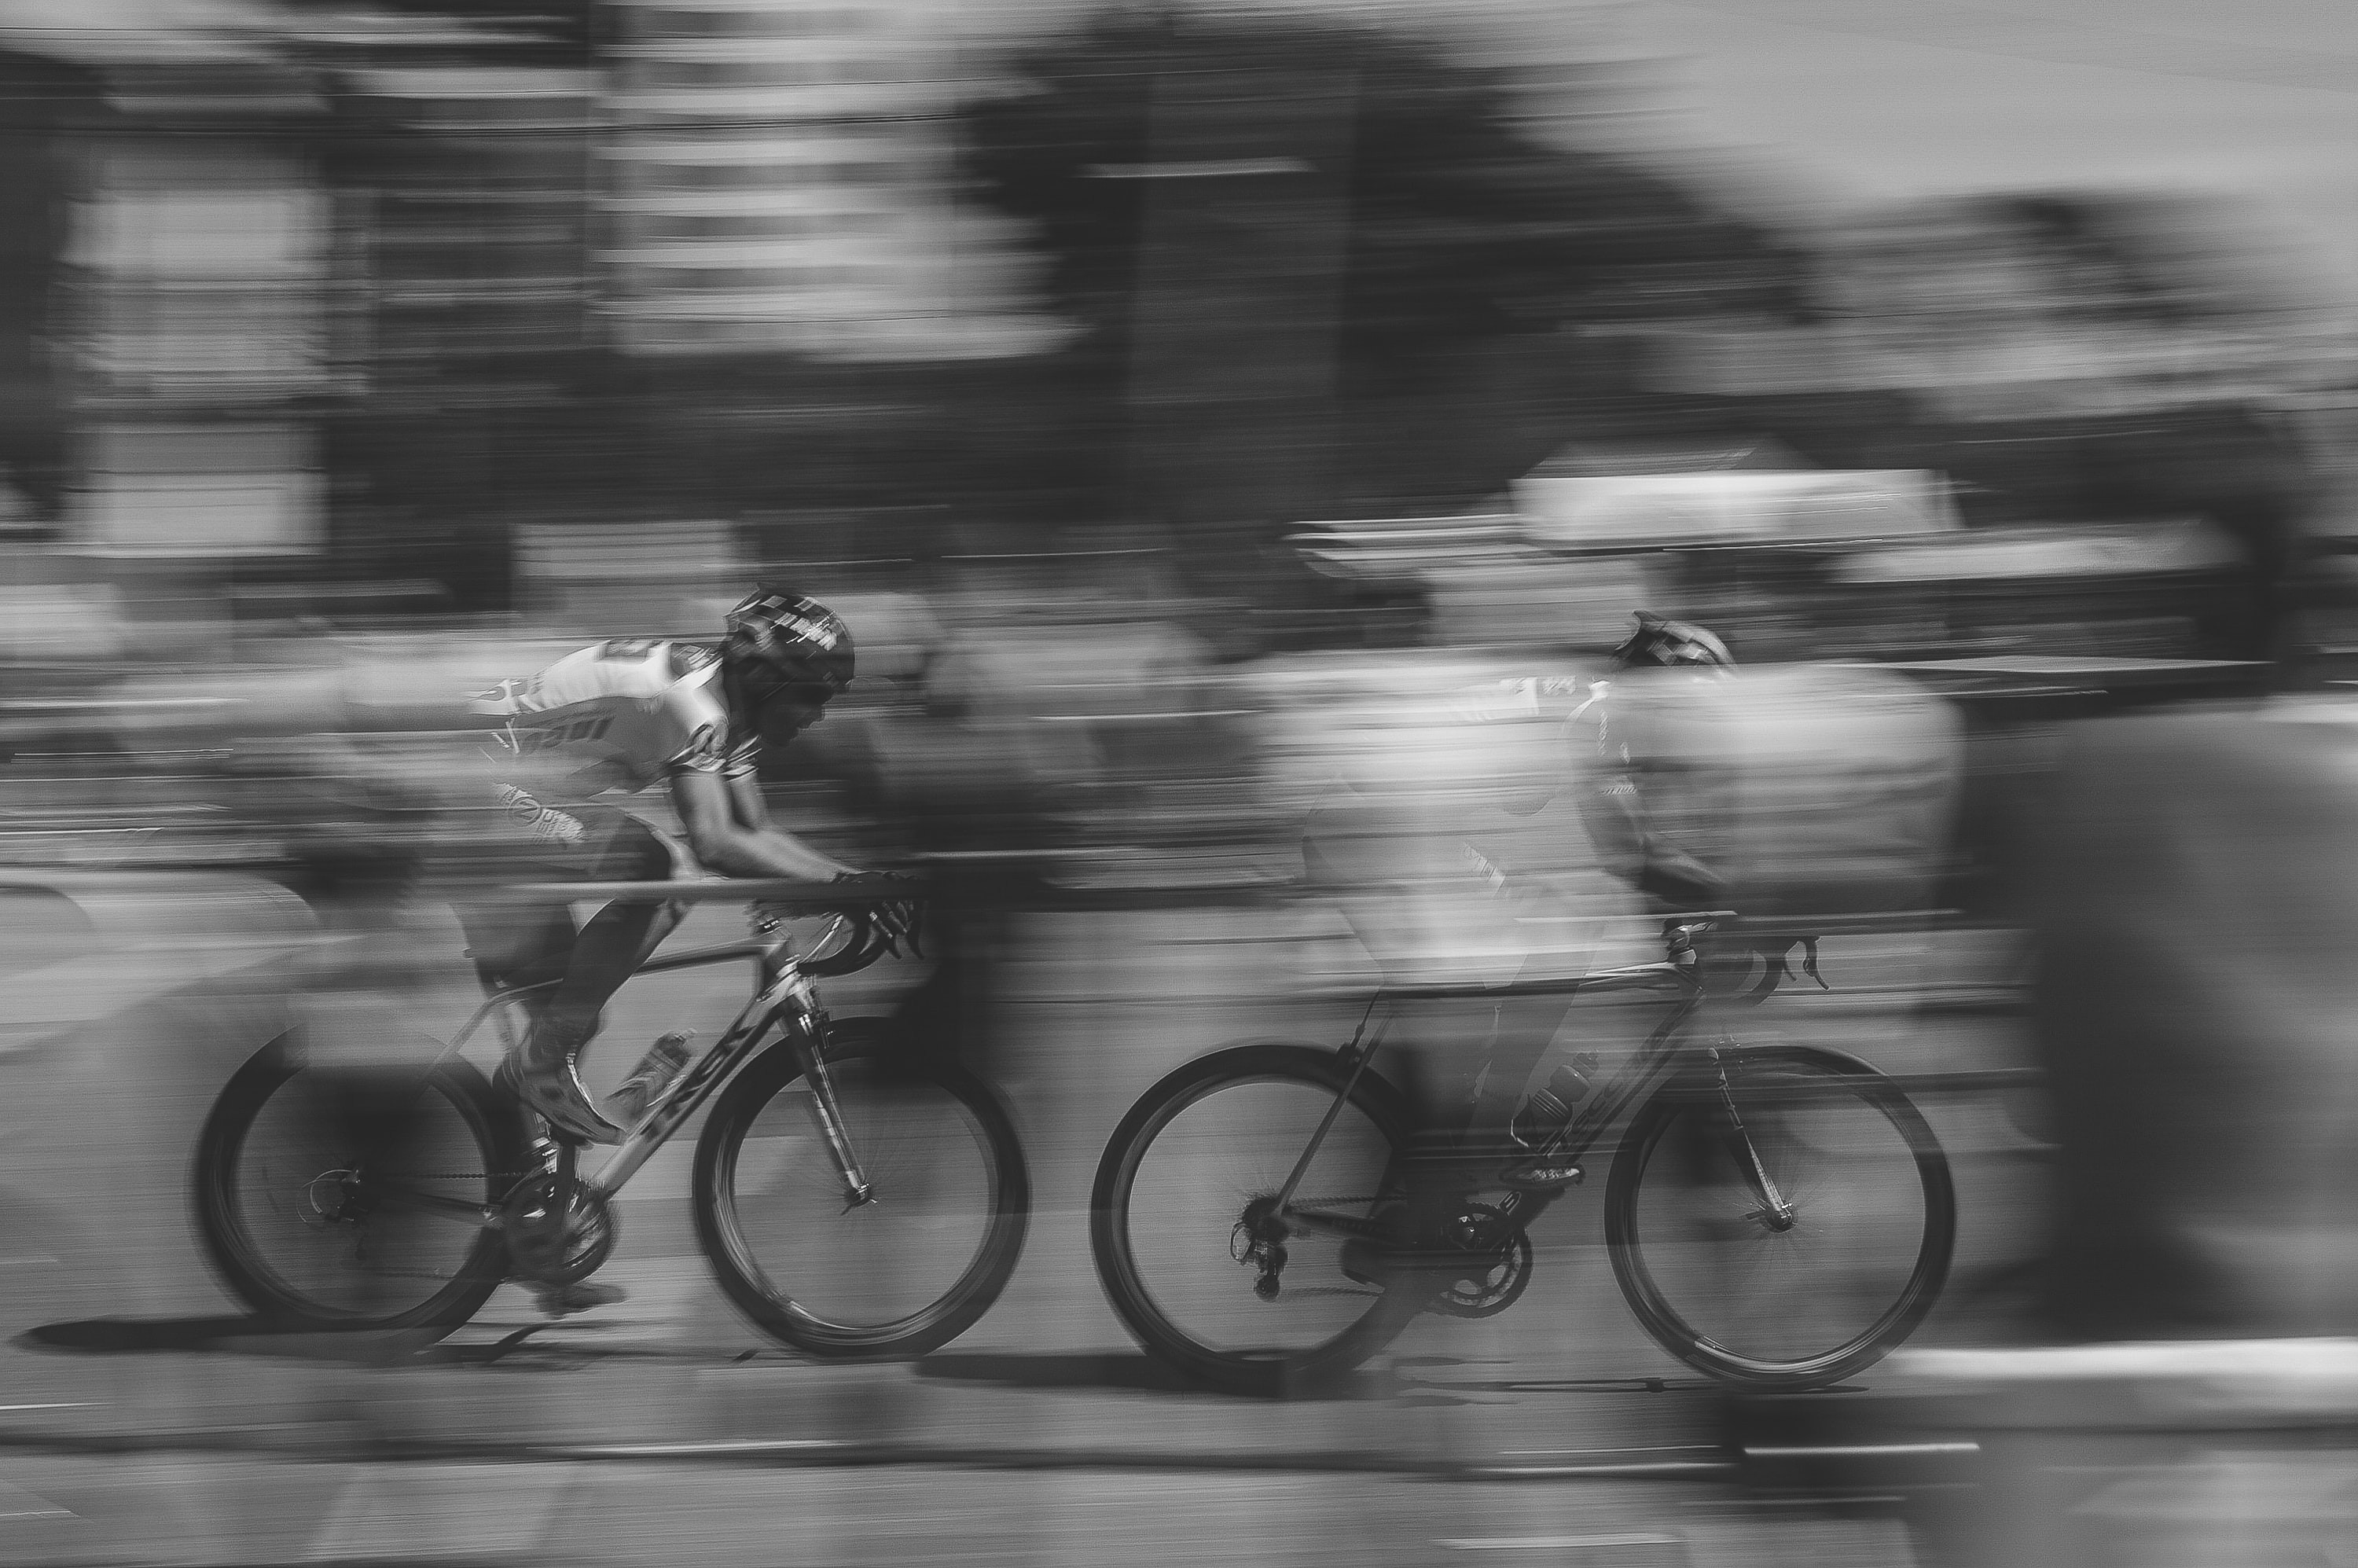 A black and white photo with blur of movement showing speed, racing, fast past. pursuit. Momentum.